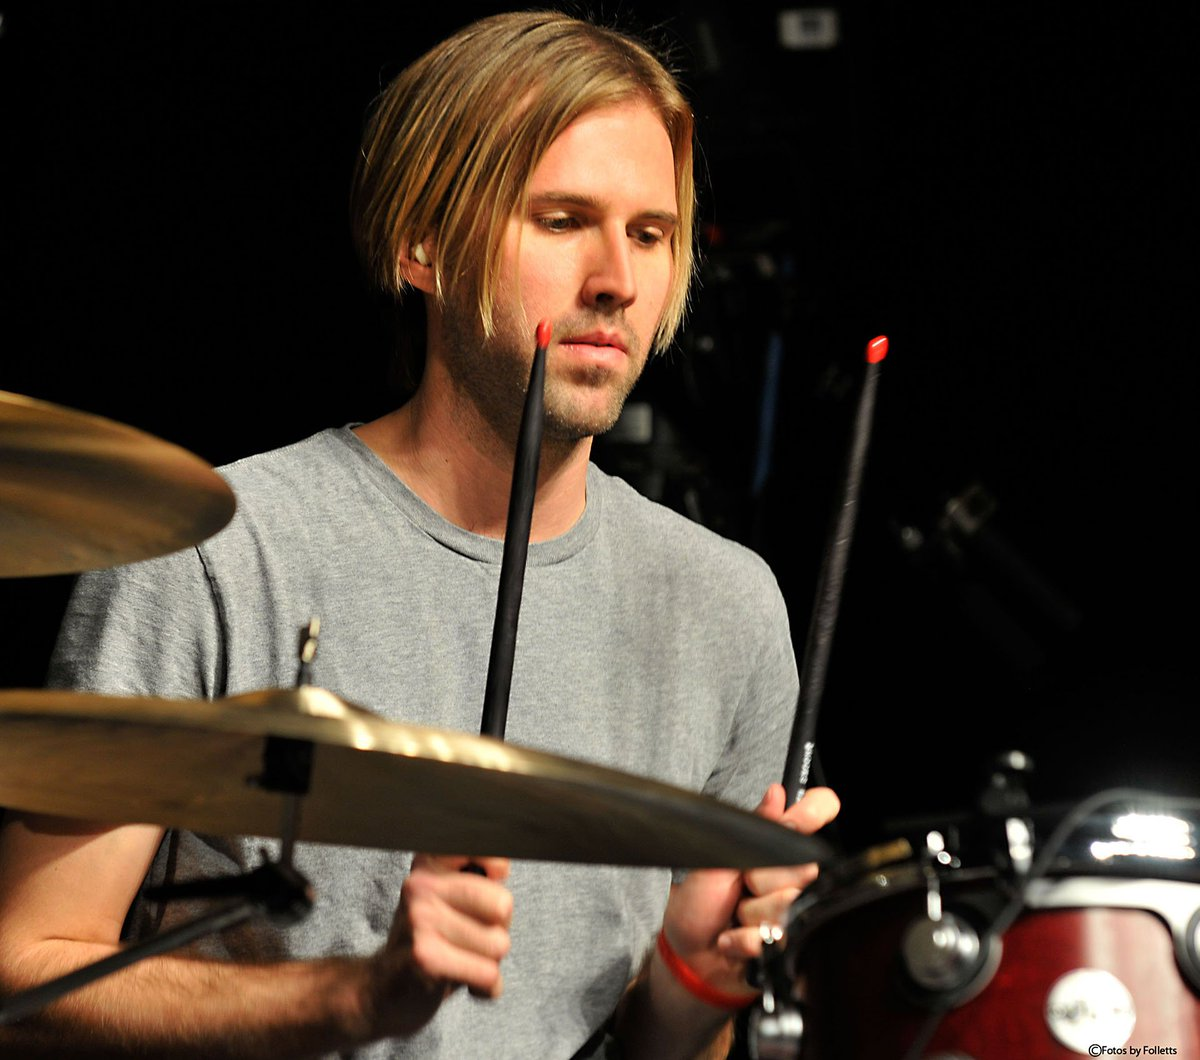 Congrats to Evans artist @BrooksWackerman on his new gig with @TheOfficialA7X Avenged Sevenfold! https://t.co/SCua49IMSH